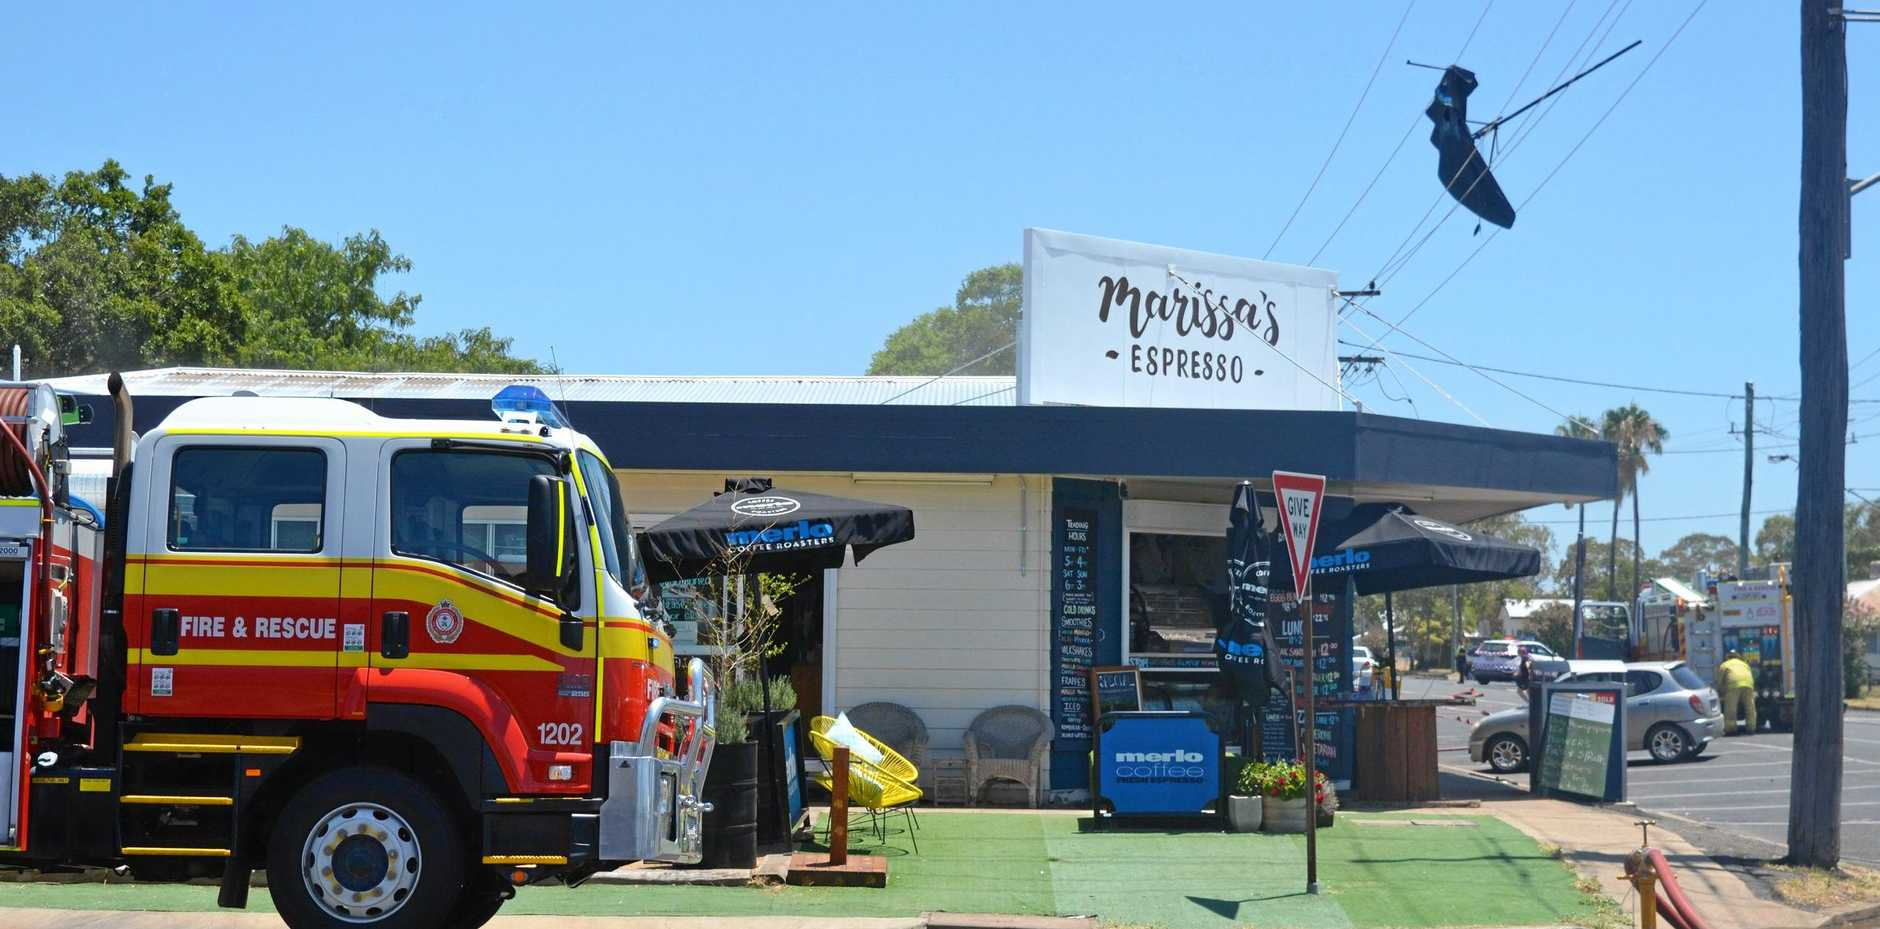 FREAK FIRE: An umbrella flew up into powerlines cutting power to surrounding traffic lights and causing a fire above the bottle shop.